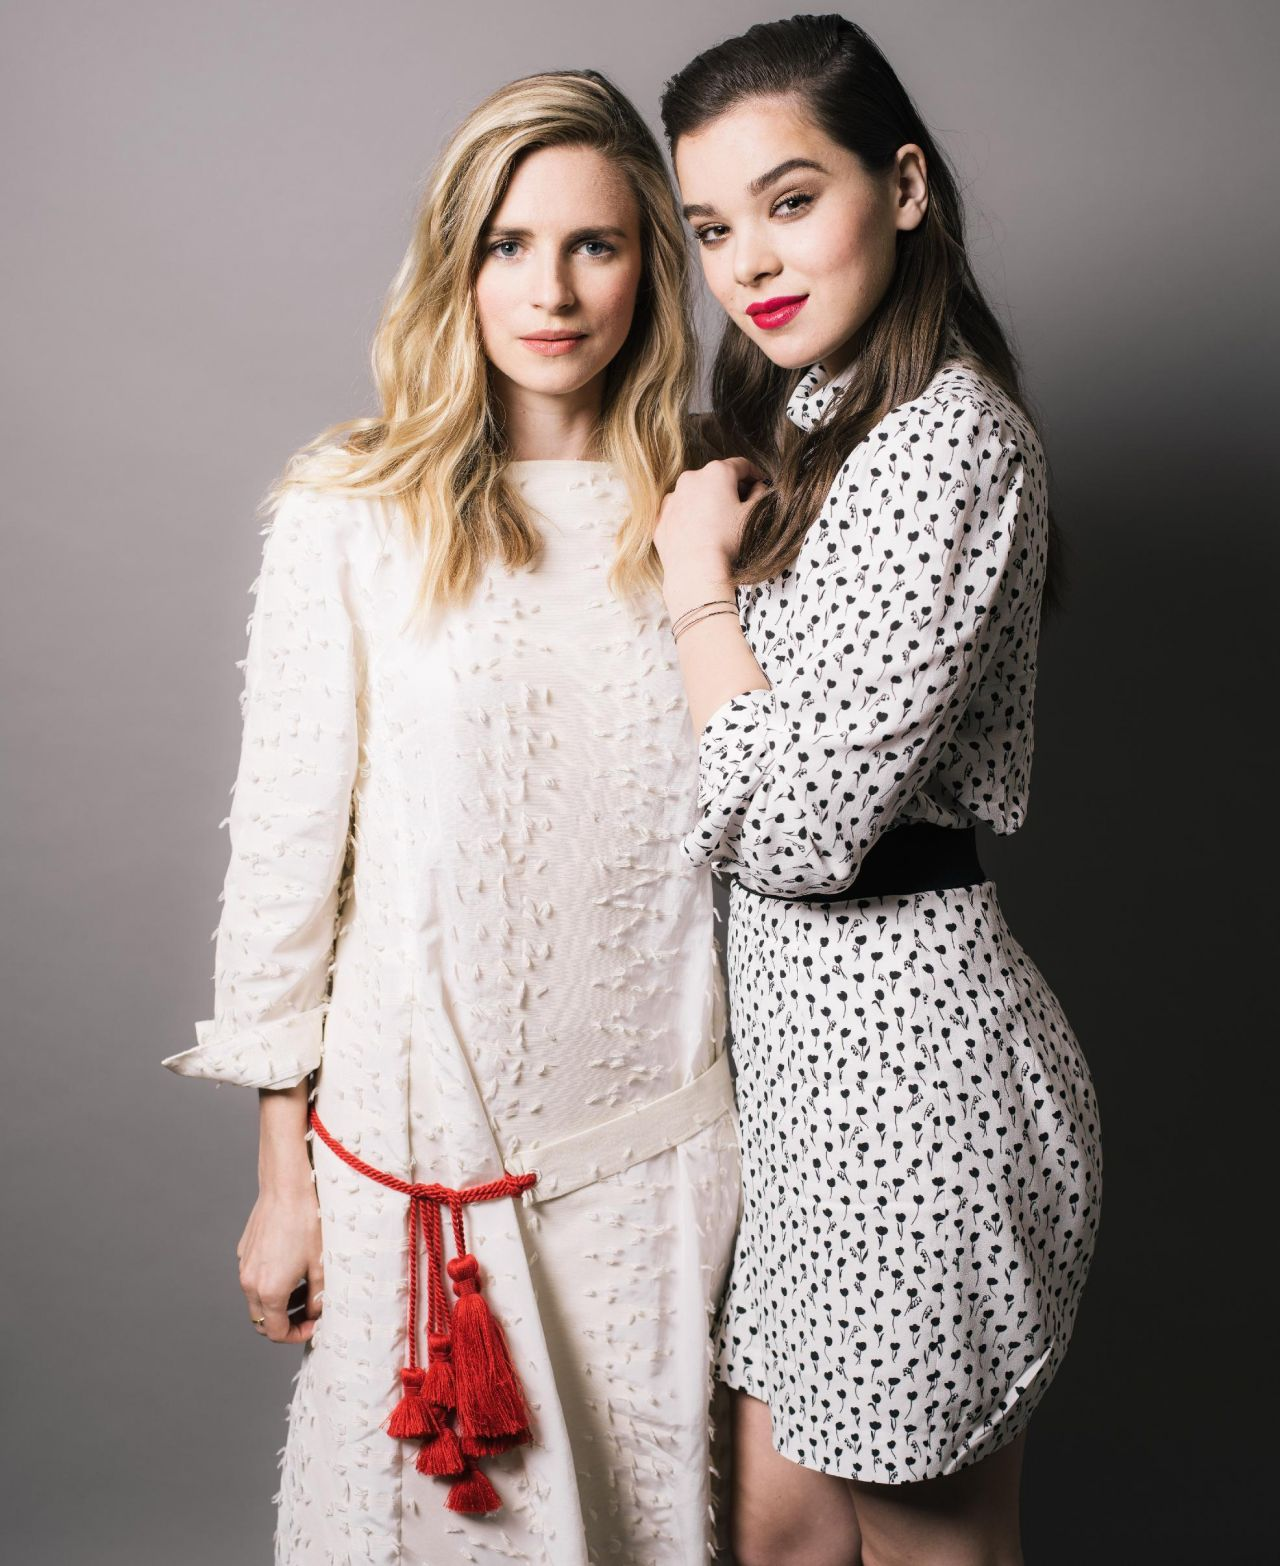 Hailee Steinfeld and Brit Marling - \'The Keeping Room\' Portraits ...